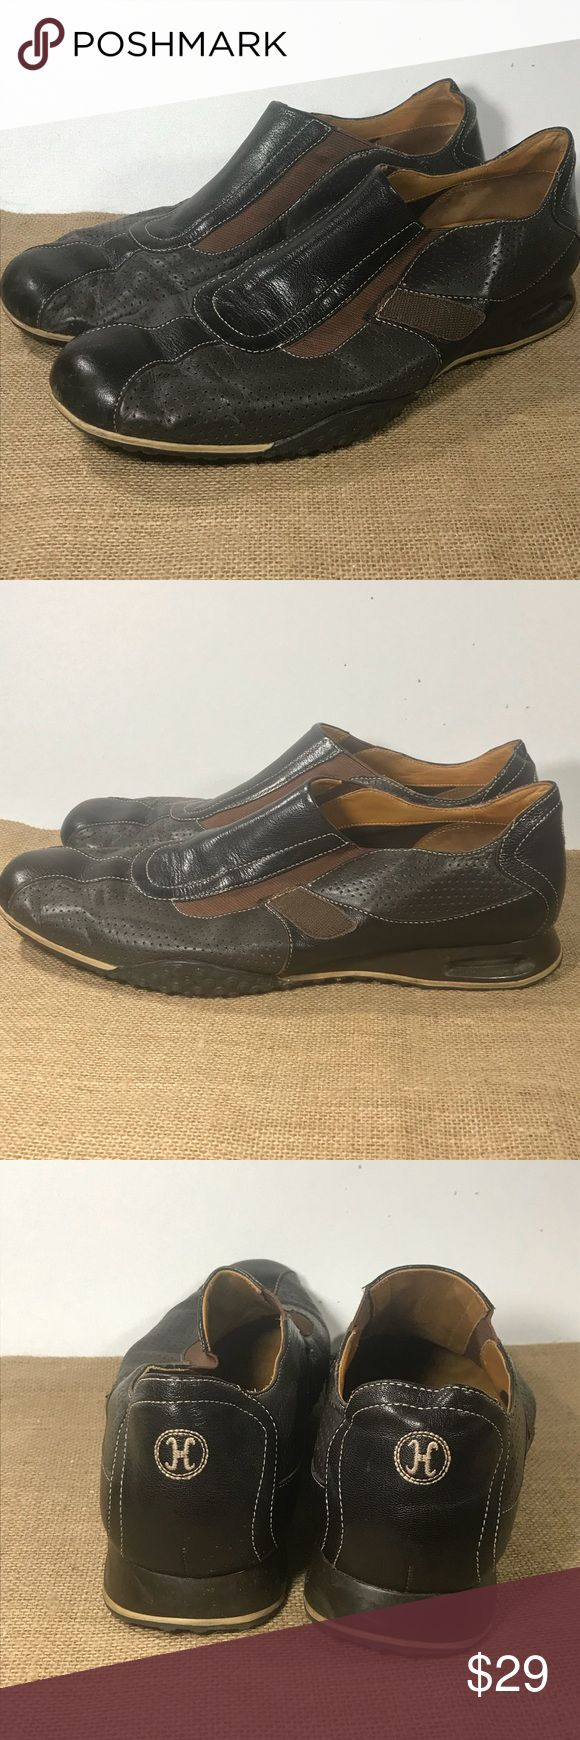 Mens 13 Cole Haan Loafers Slide On Leather These are in good condition, the strap has been removed.  Mens Size 13   Cole Haan Cole Haan Shoes Loafers & Slip-Ons